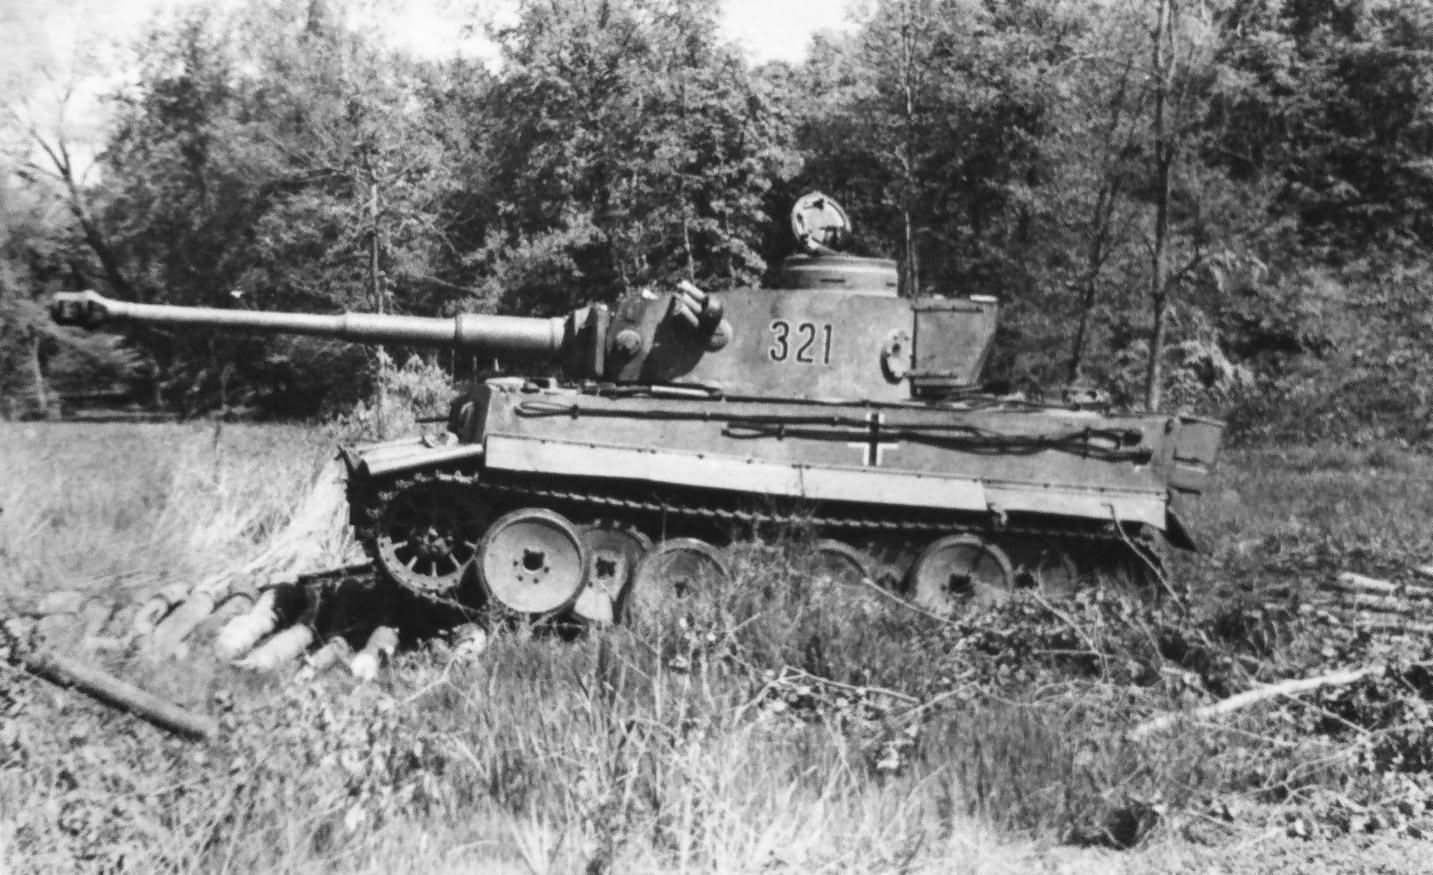 Panzer VI Tiger of Schwere Panzer-Abteilung 503, tank number 321 eastern front 1943